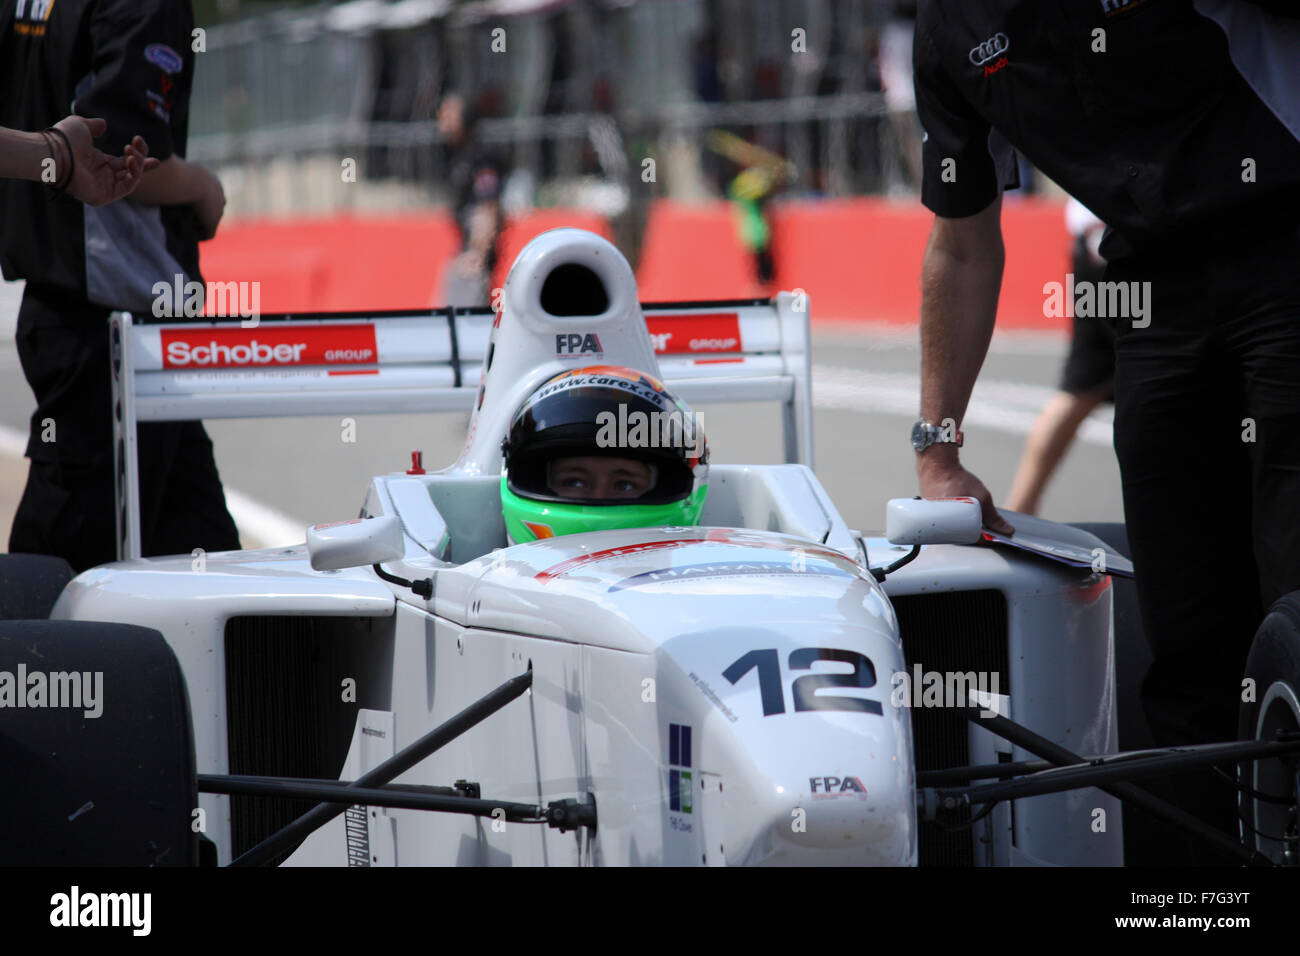 Racing driver in white car - Stock Image